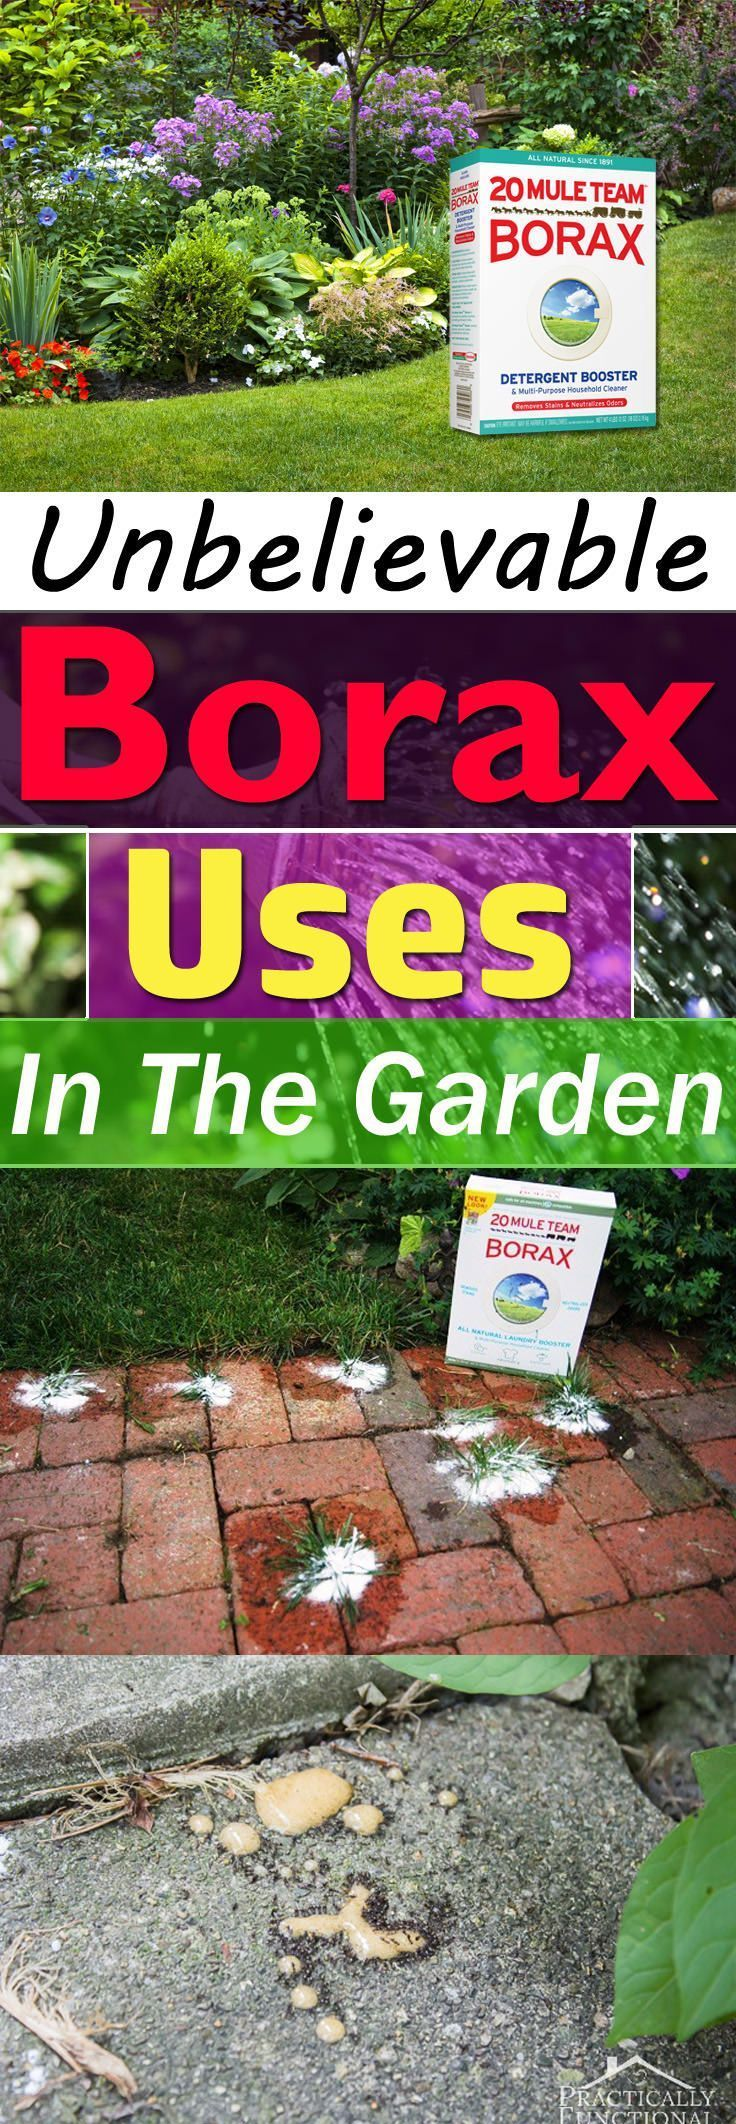 Unbelievable borax uses in the garden house chores minerals and